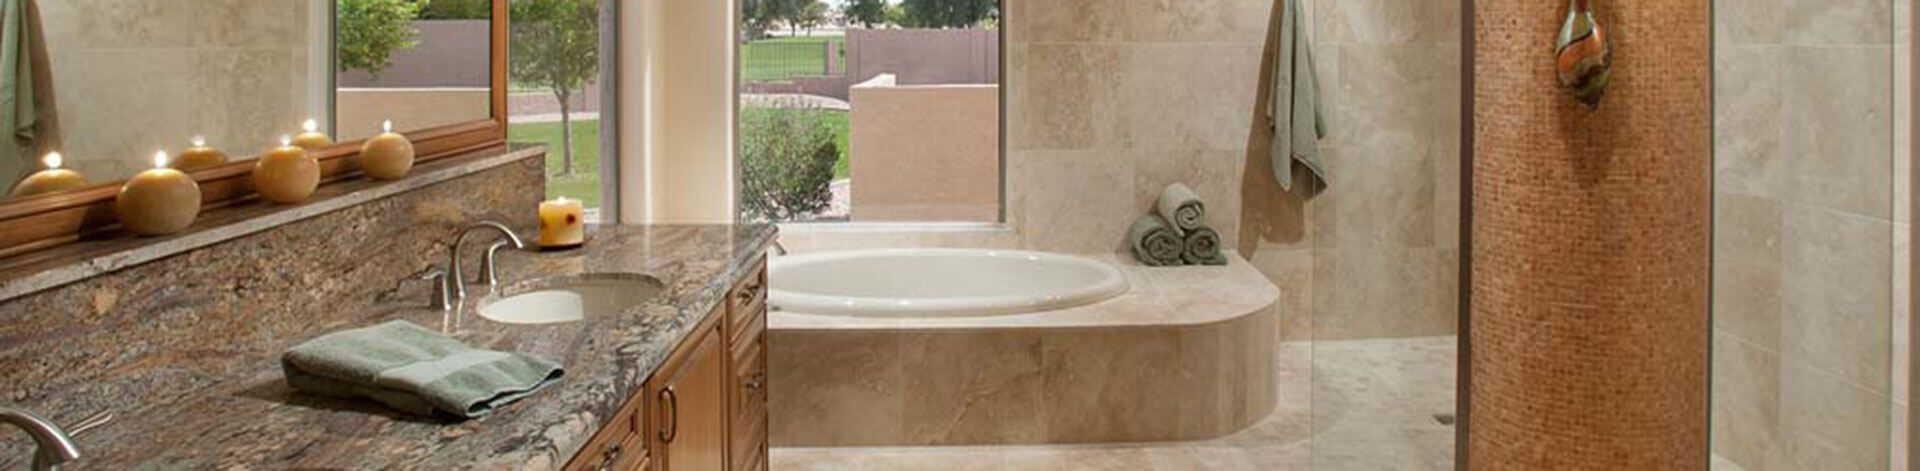 Phoenix Bathroom Remodel Endearing Bathroom Remodeling In Phoenix & Scottsdale  Republic West Remodeling Inspiration